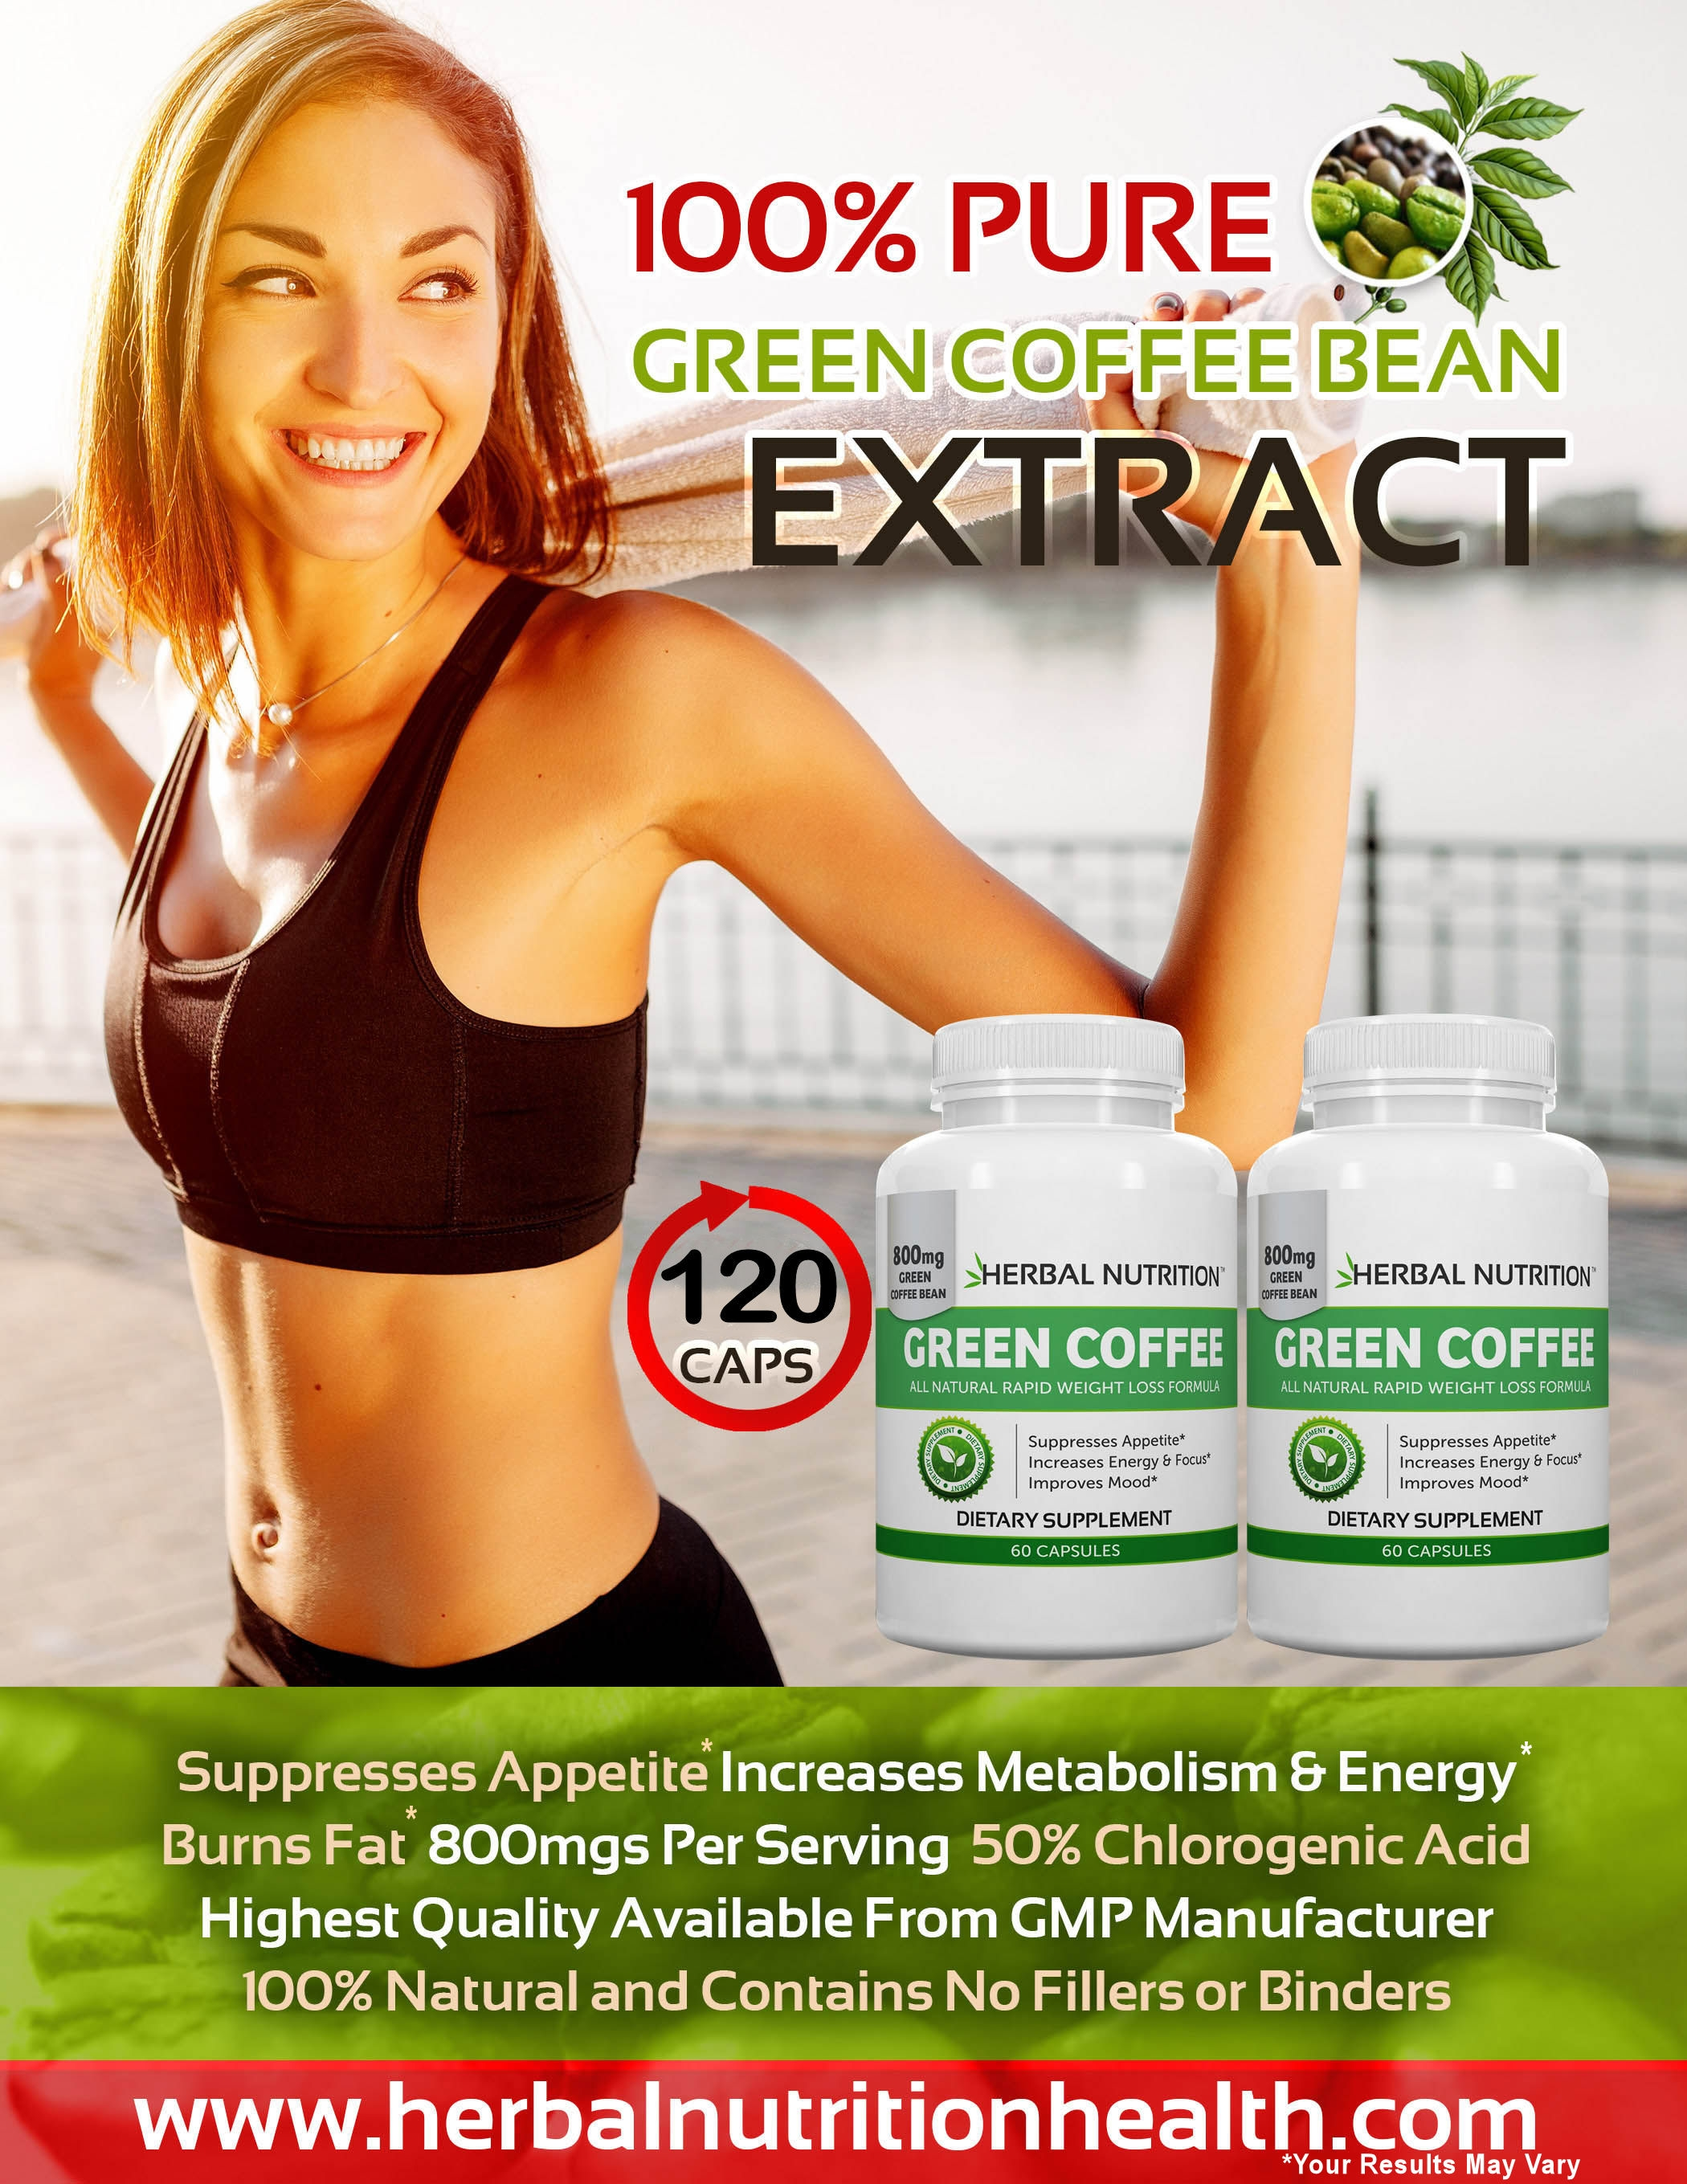 Green Coffee Bean Extract Benefits